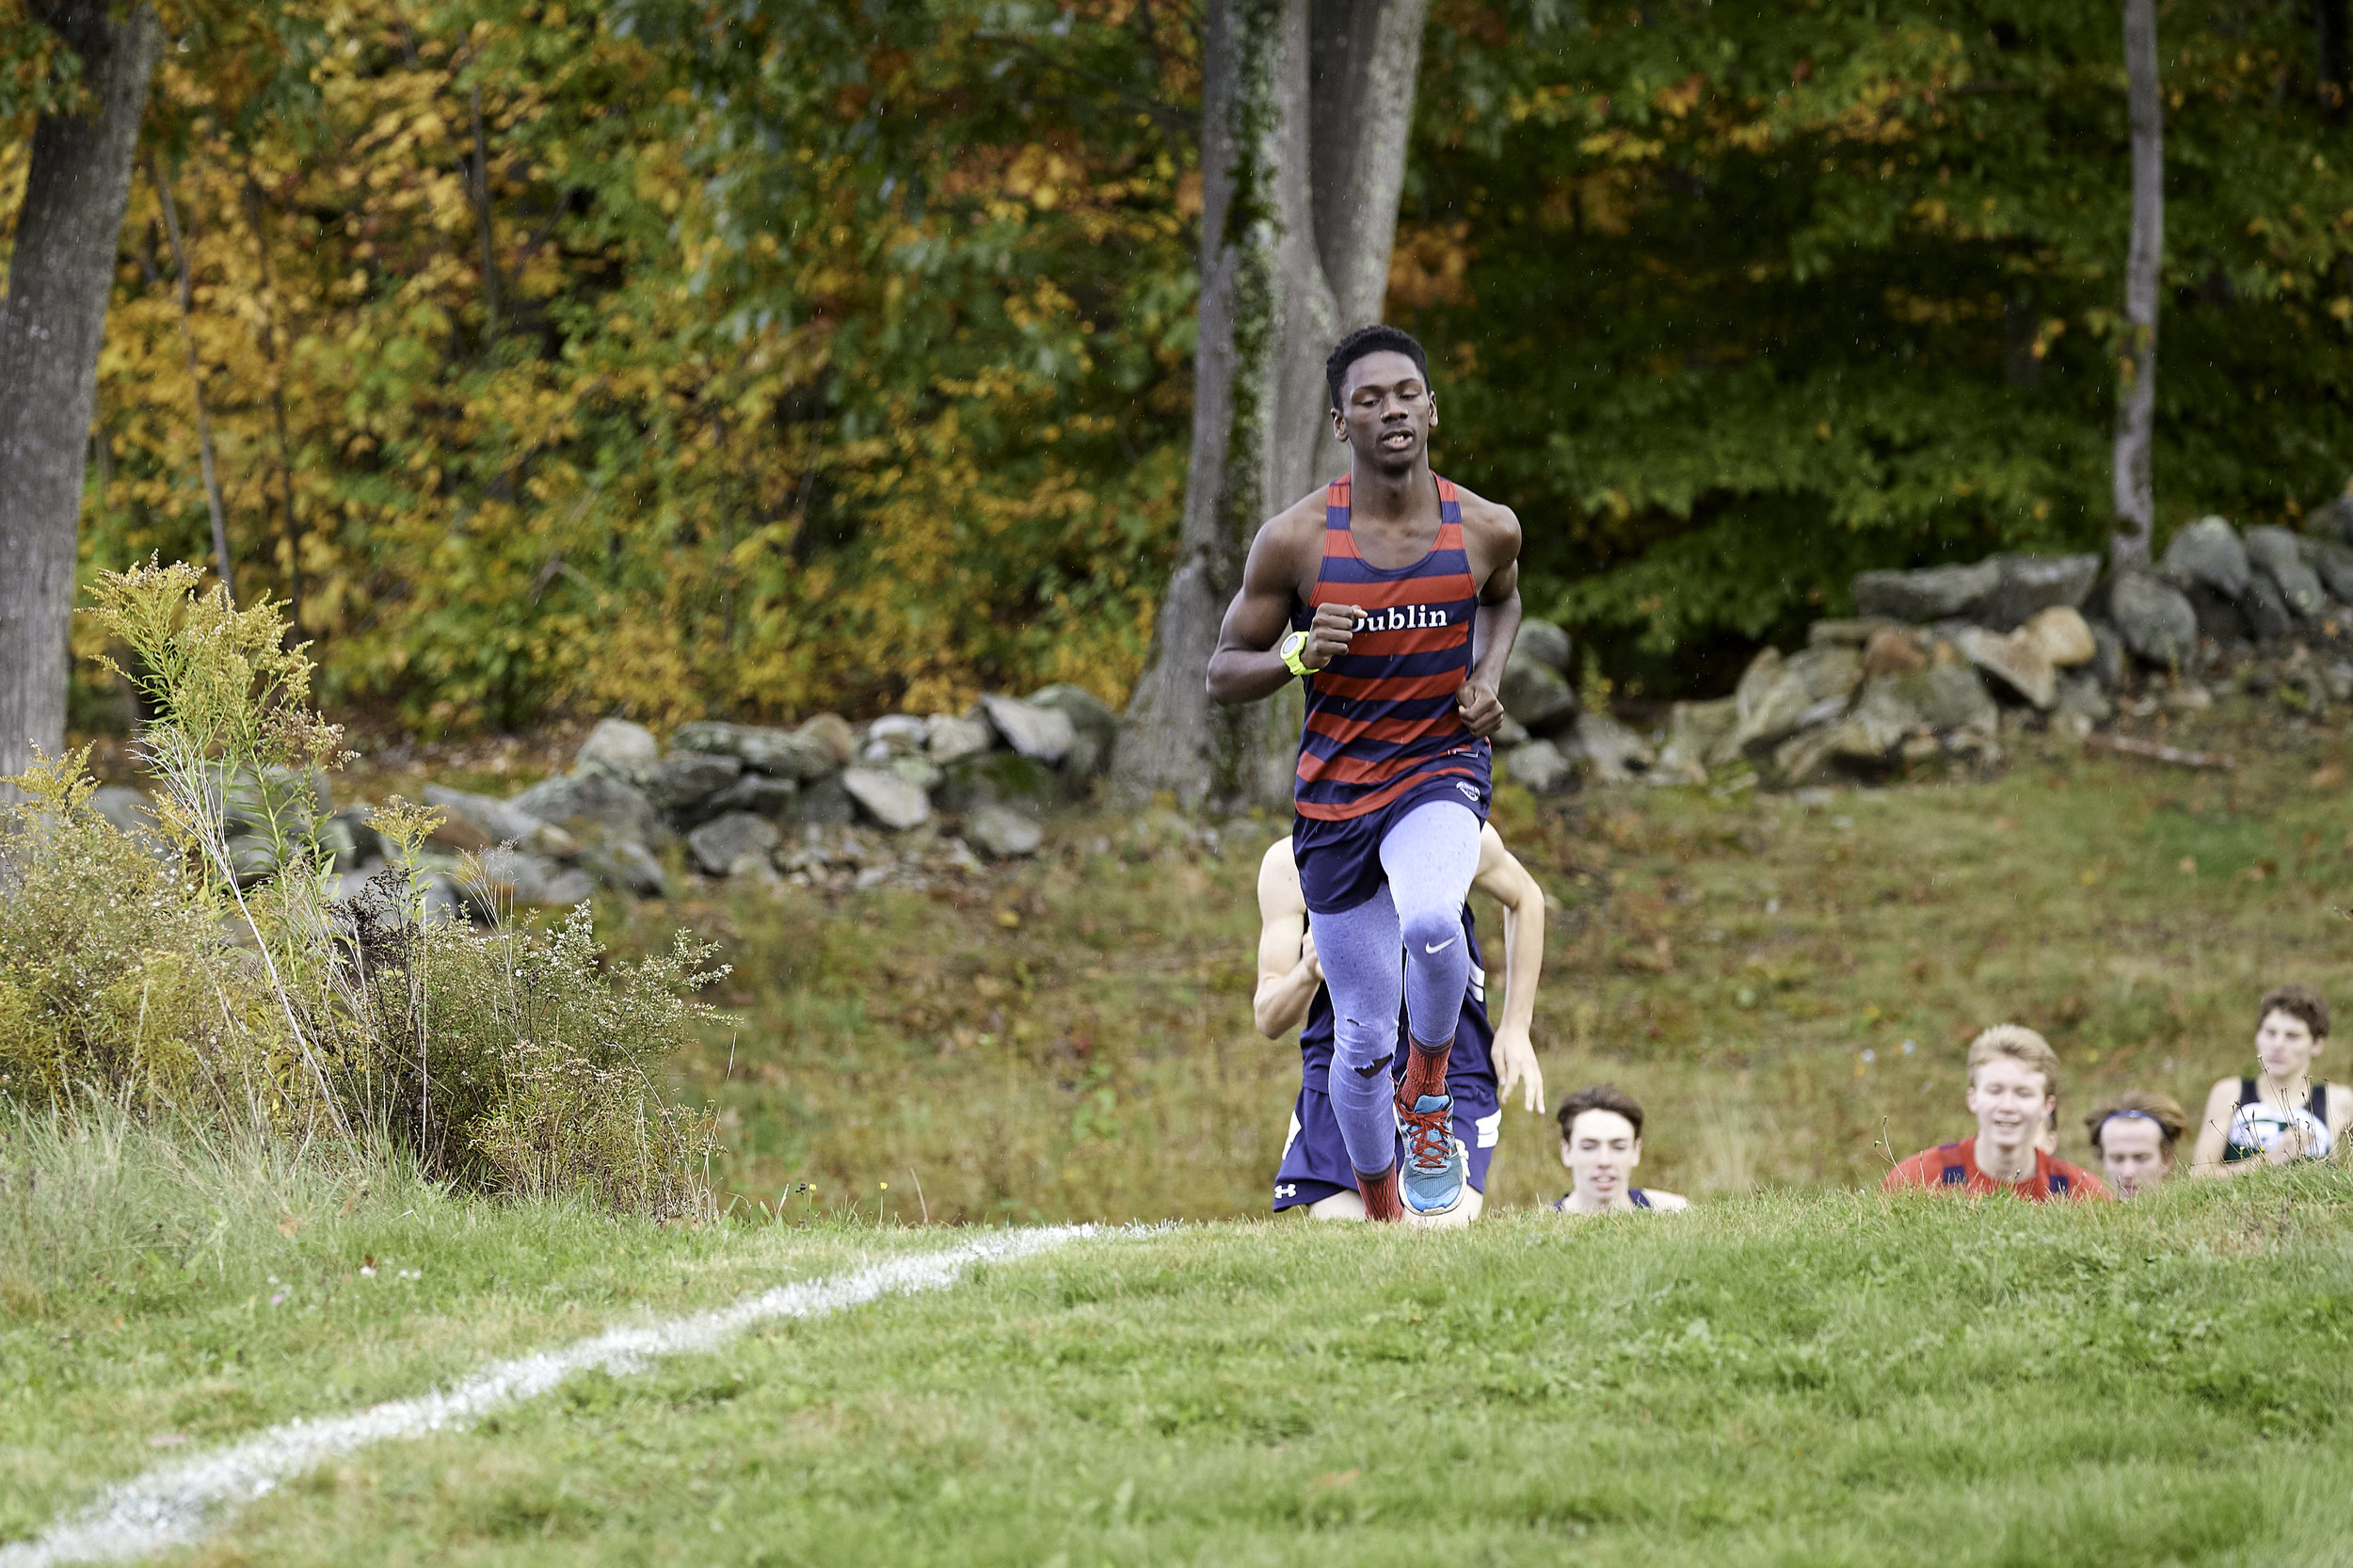 Dublion Invitational - October 12, 2018 - 136433.jpg